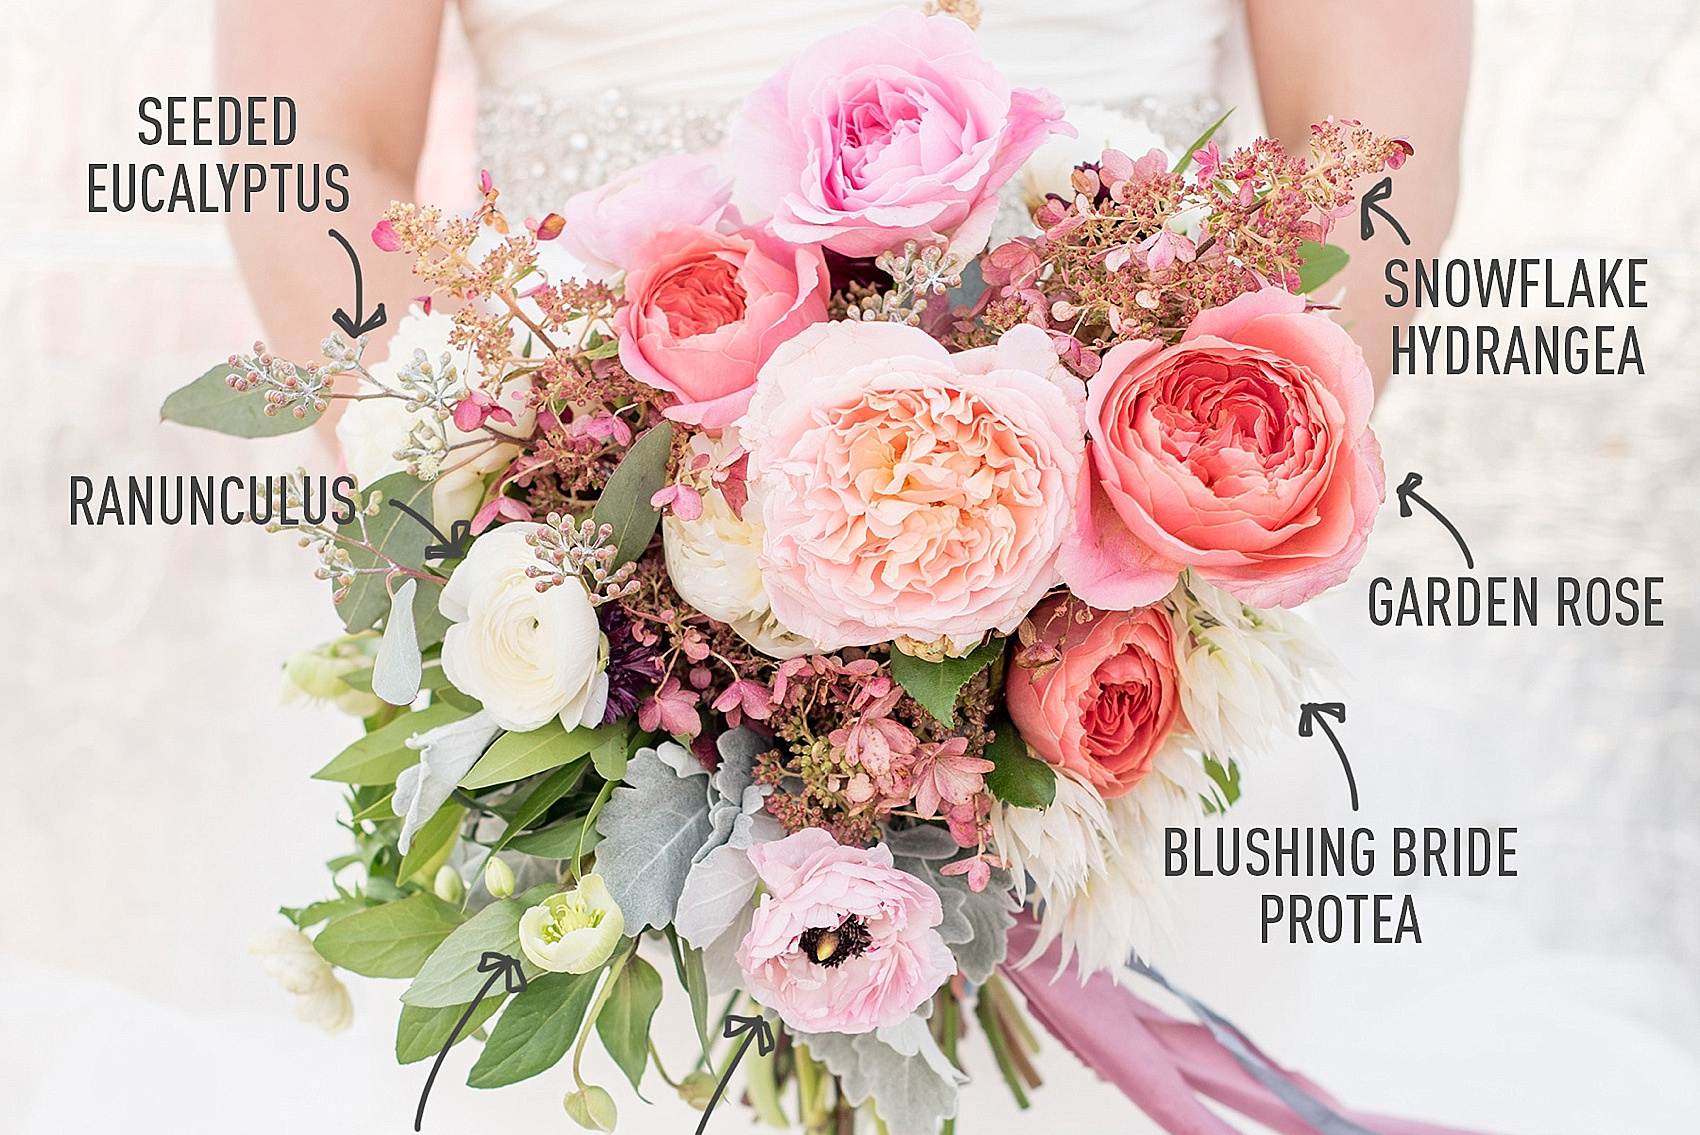 Pink Garden Rose And Hydrangea Bouquet bouquet breakdown: unique arrangement with pink hues, garden roses